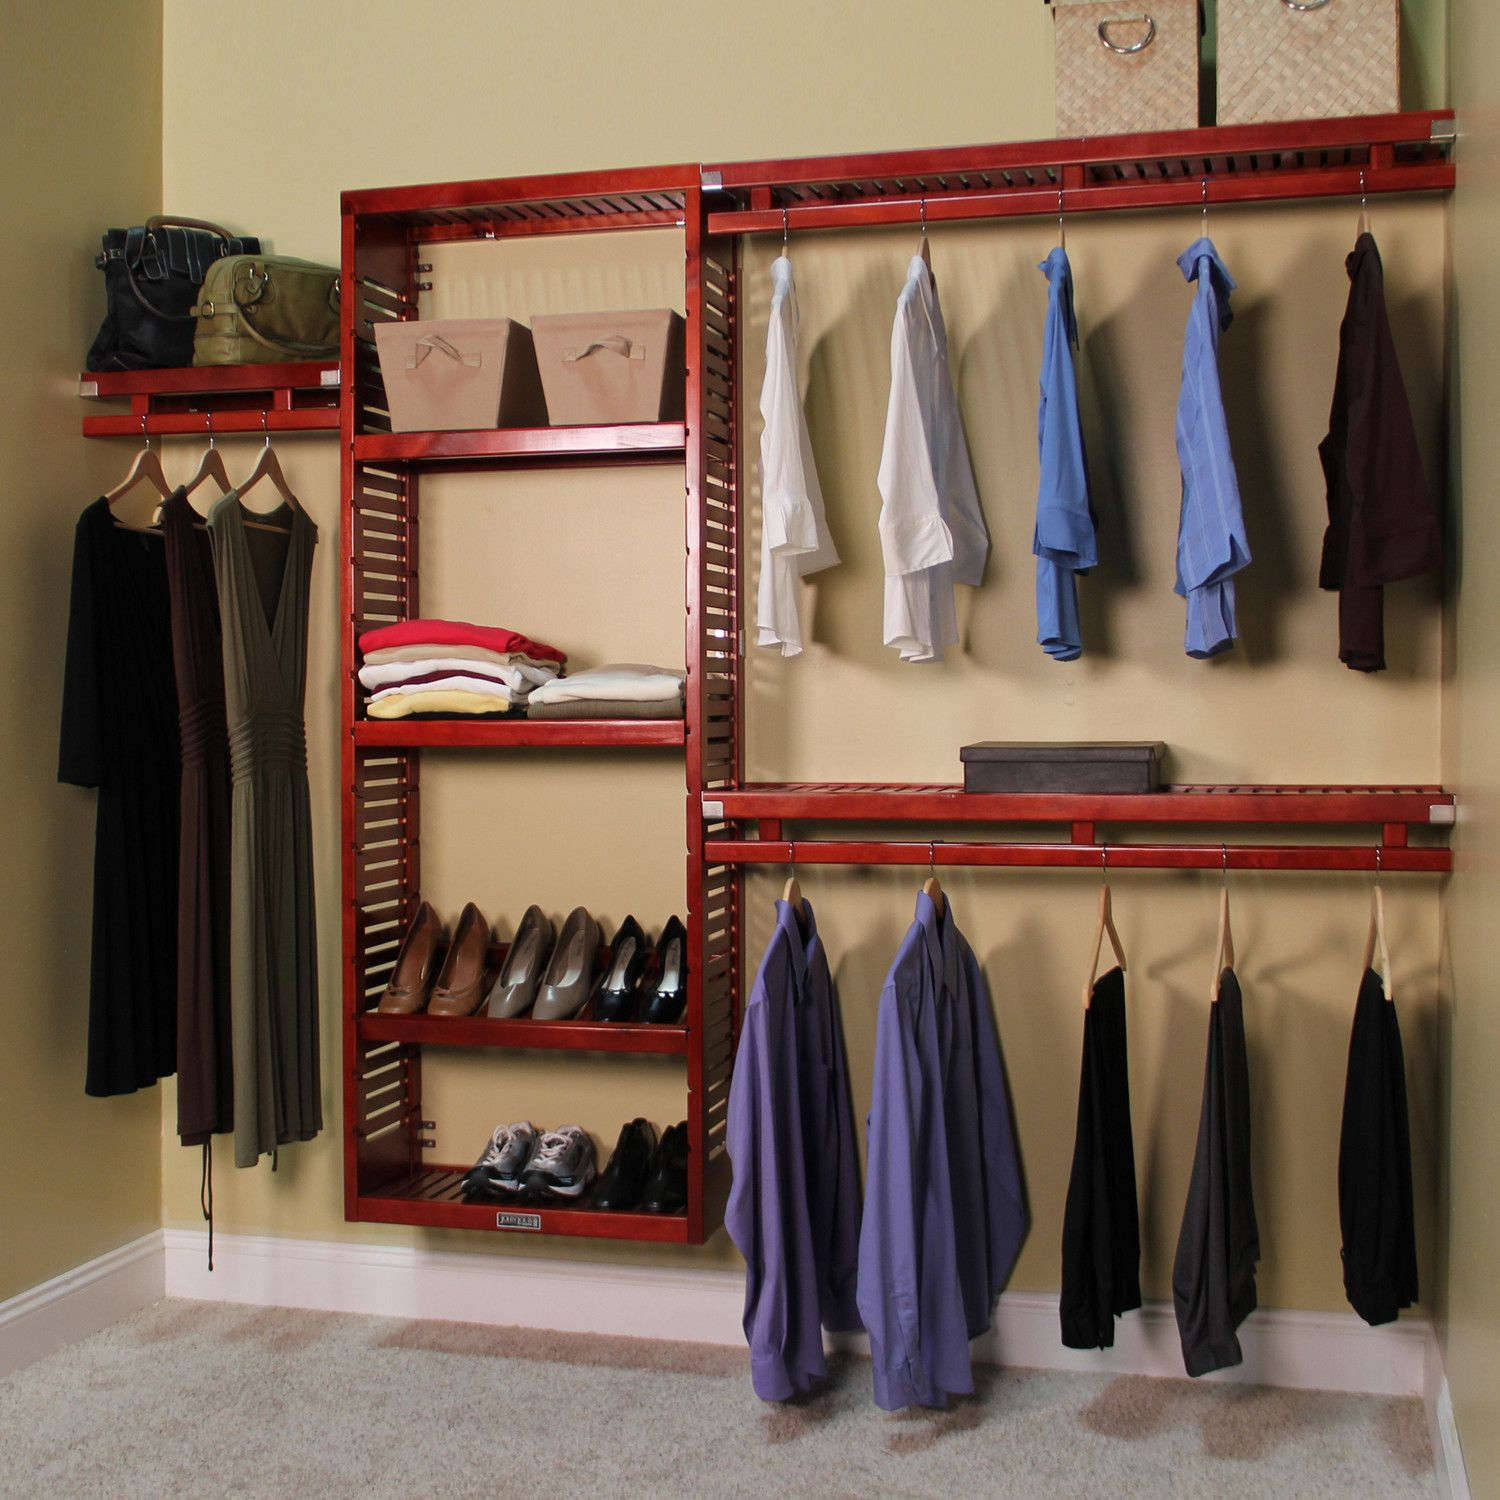 amazing decorating organizer can wood house with inside systems ideas design add closet be wooden for beauty bedroom allen that materials scenic in fancy roth ga top decor